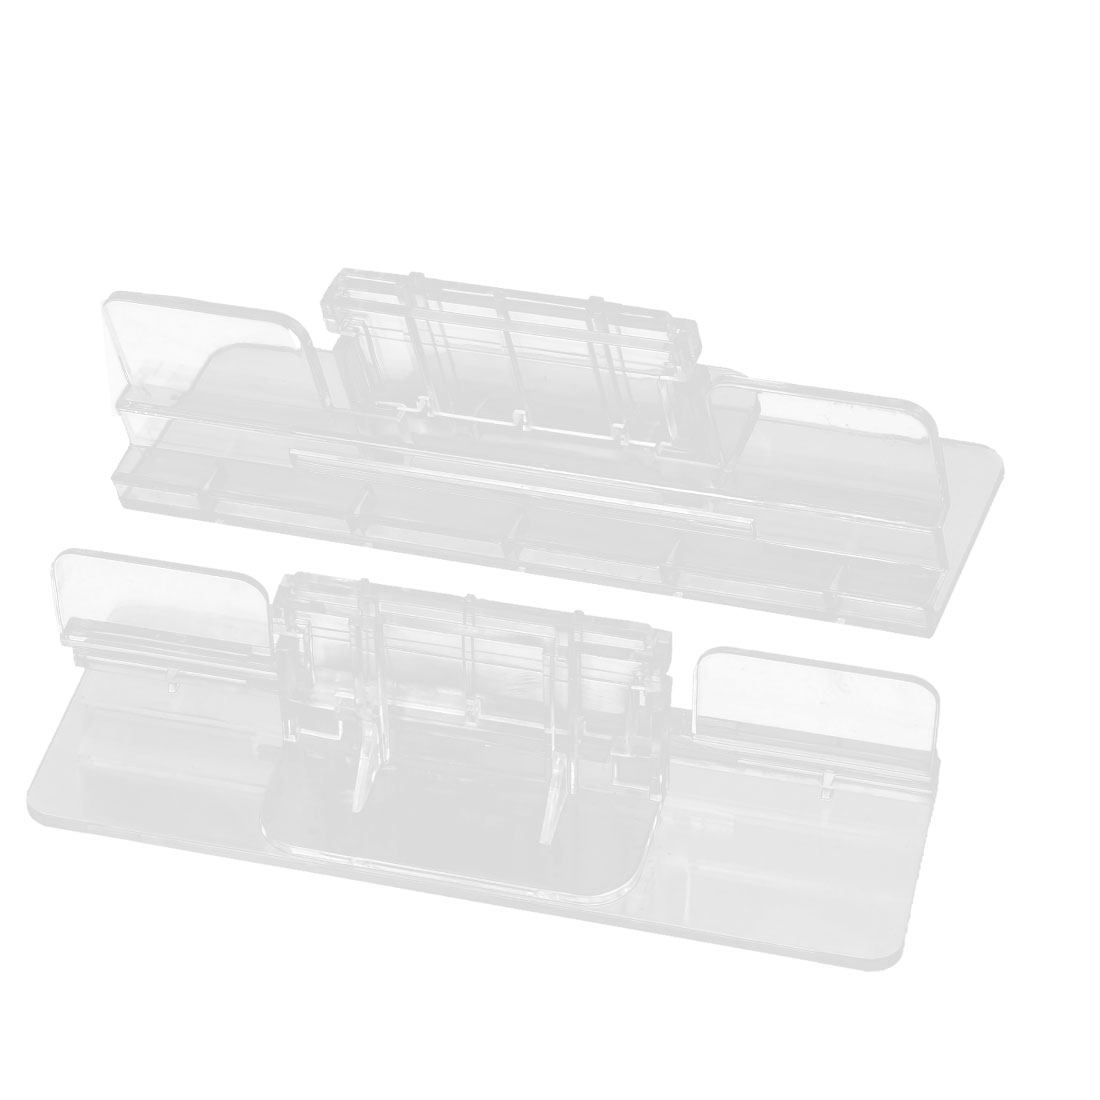 2pcs Aquarium Tank Clear Plastic Glass Cover Clip Support Holder 4-12mm